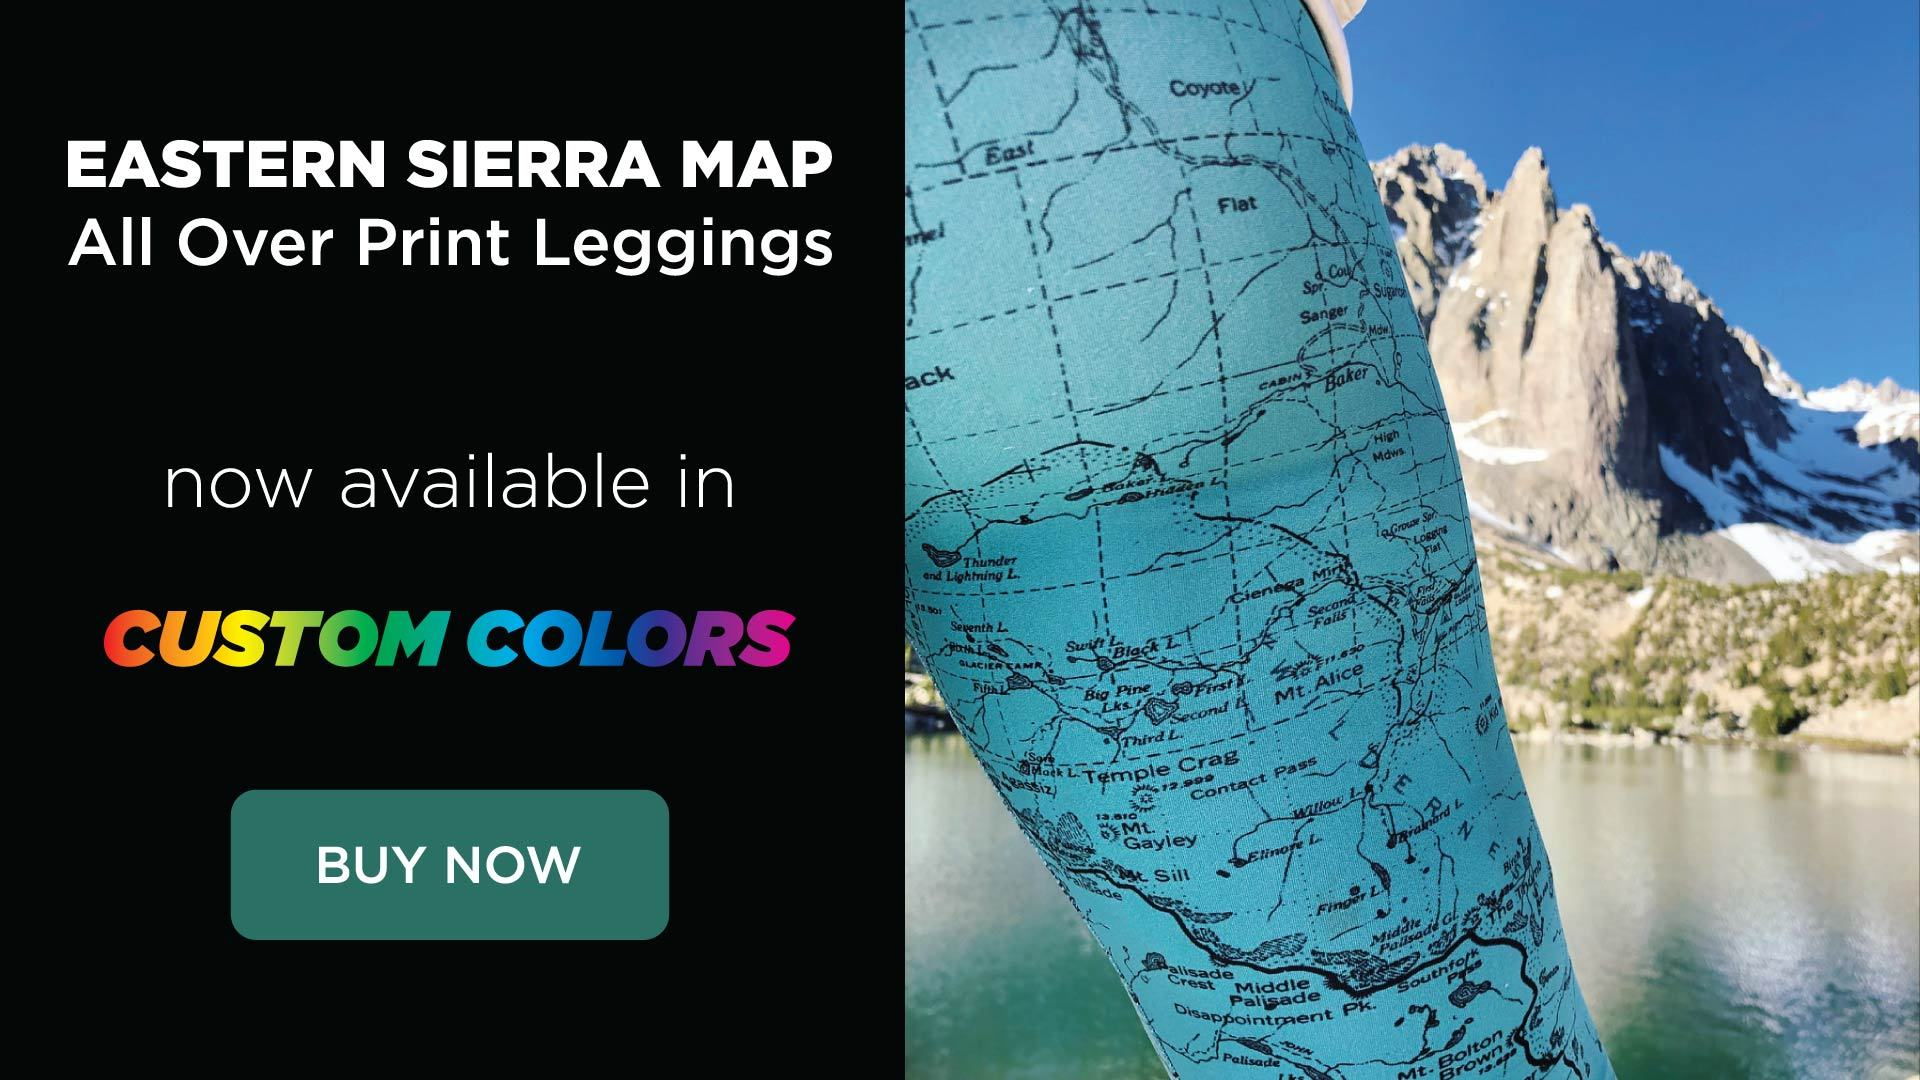 Eastern Sierra Map Leggings Now Available in Custom Colors